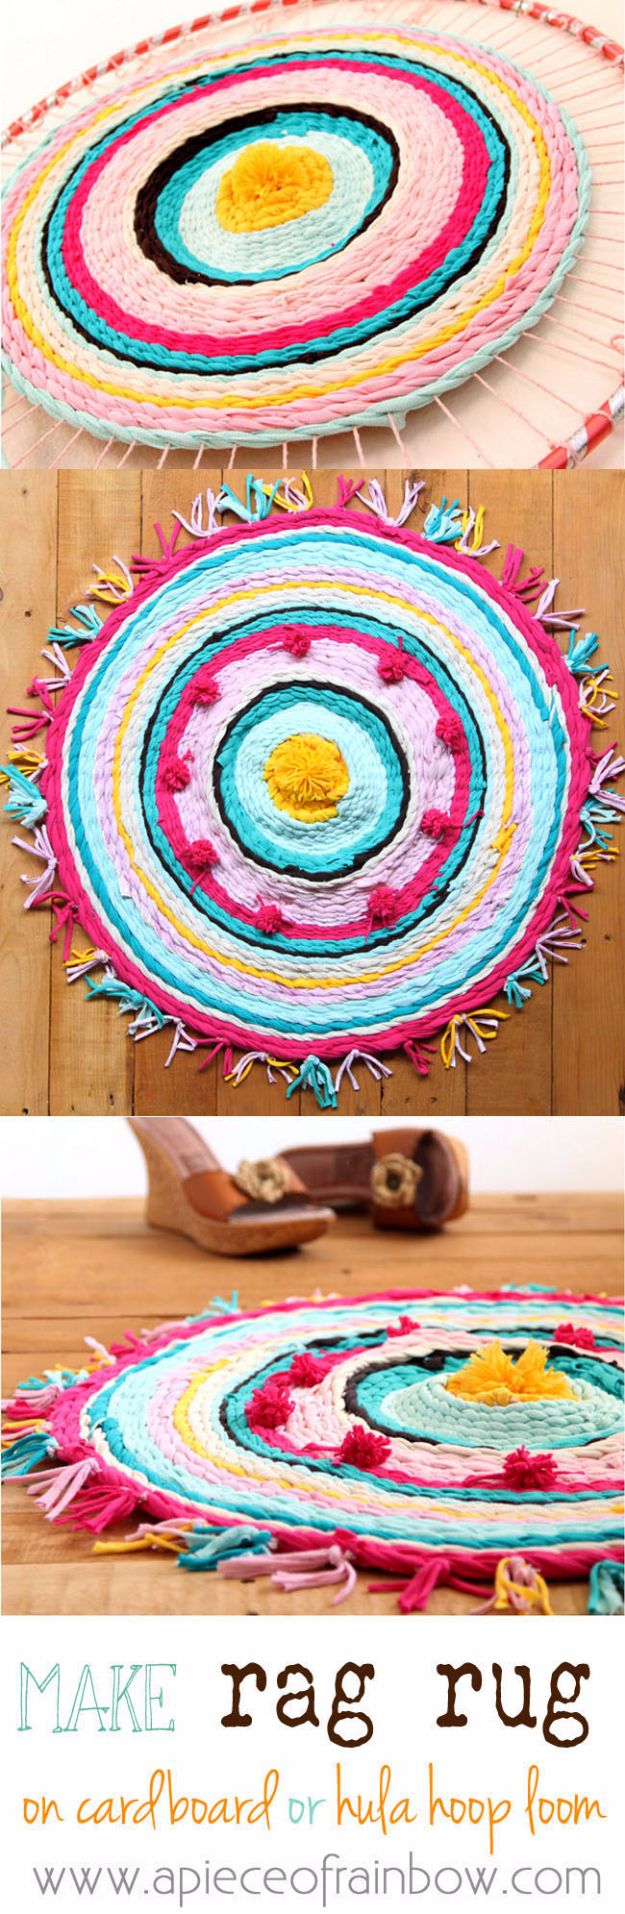 Fabric Rug Making Best 25 Rug Making Ideas On Pinterest Rag Rug Tutorial Diy